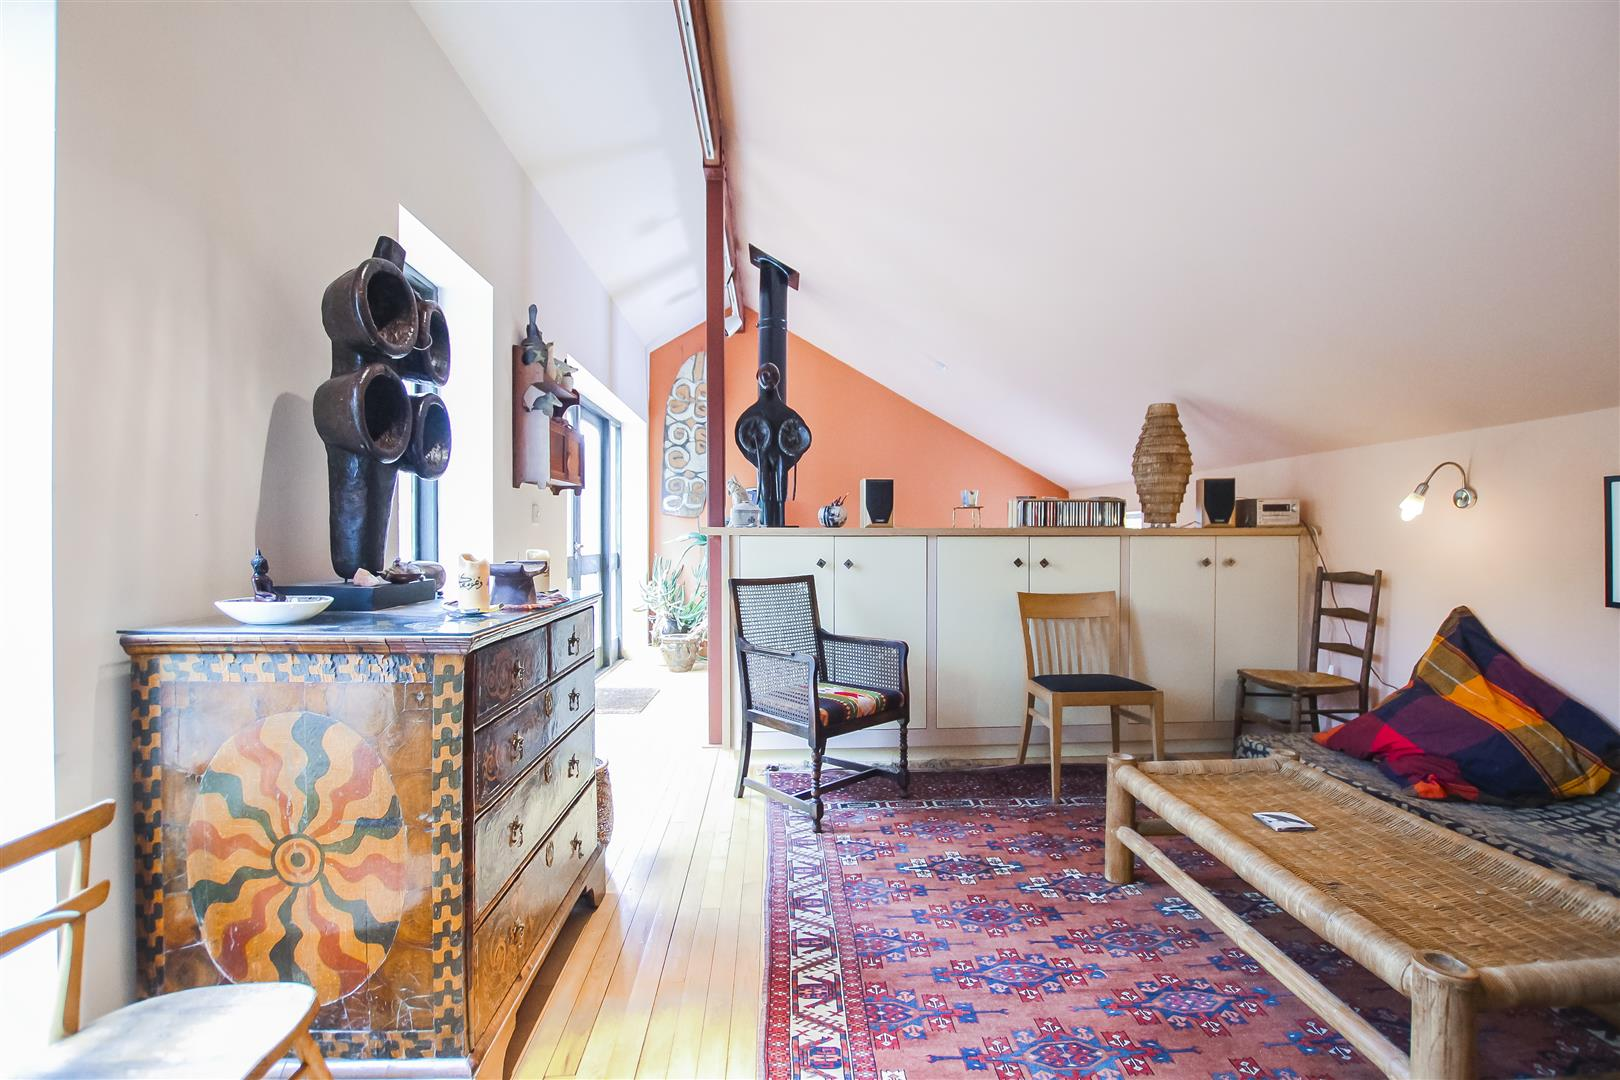 5 Bedroom Farmhouse For Sale - Image 63